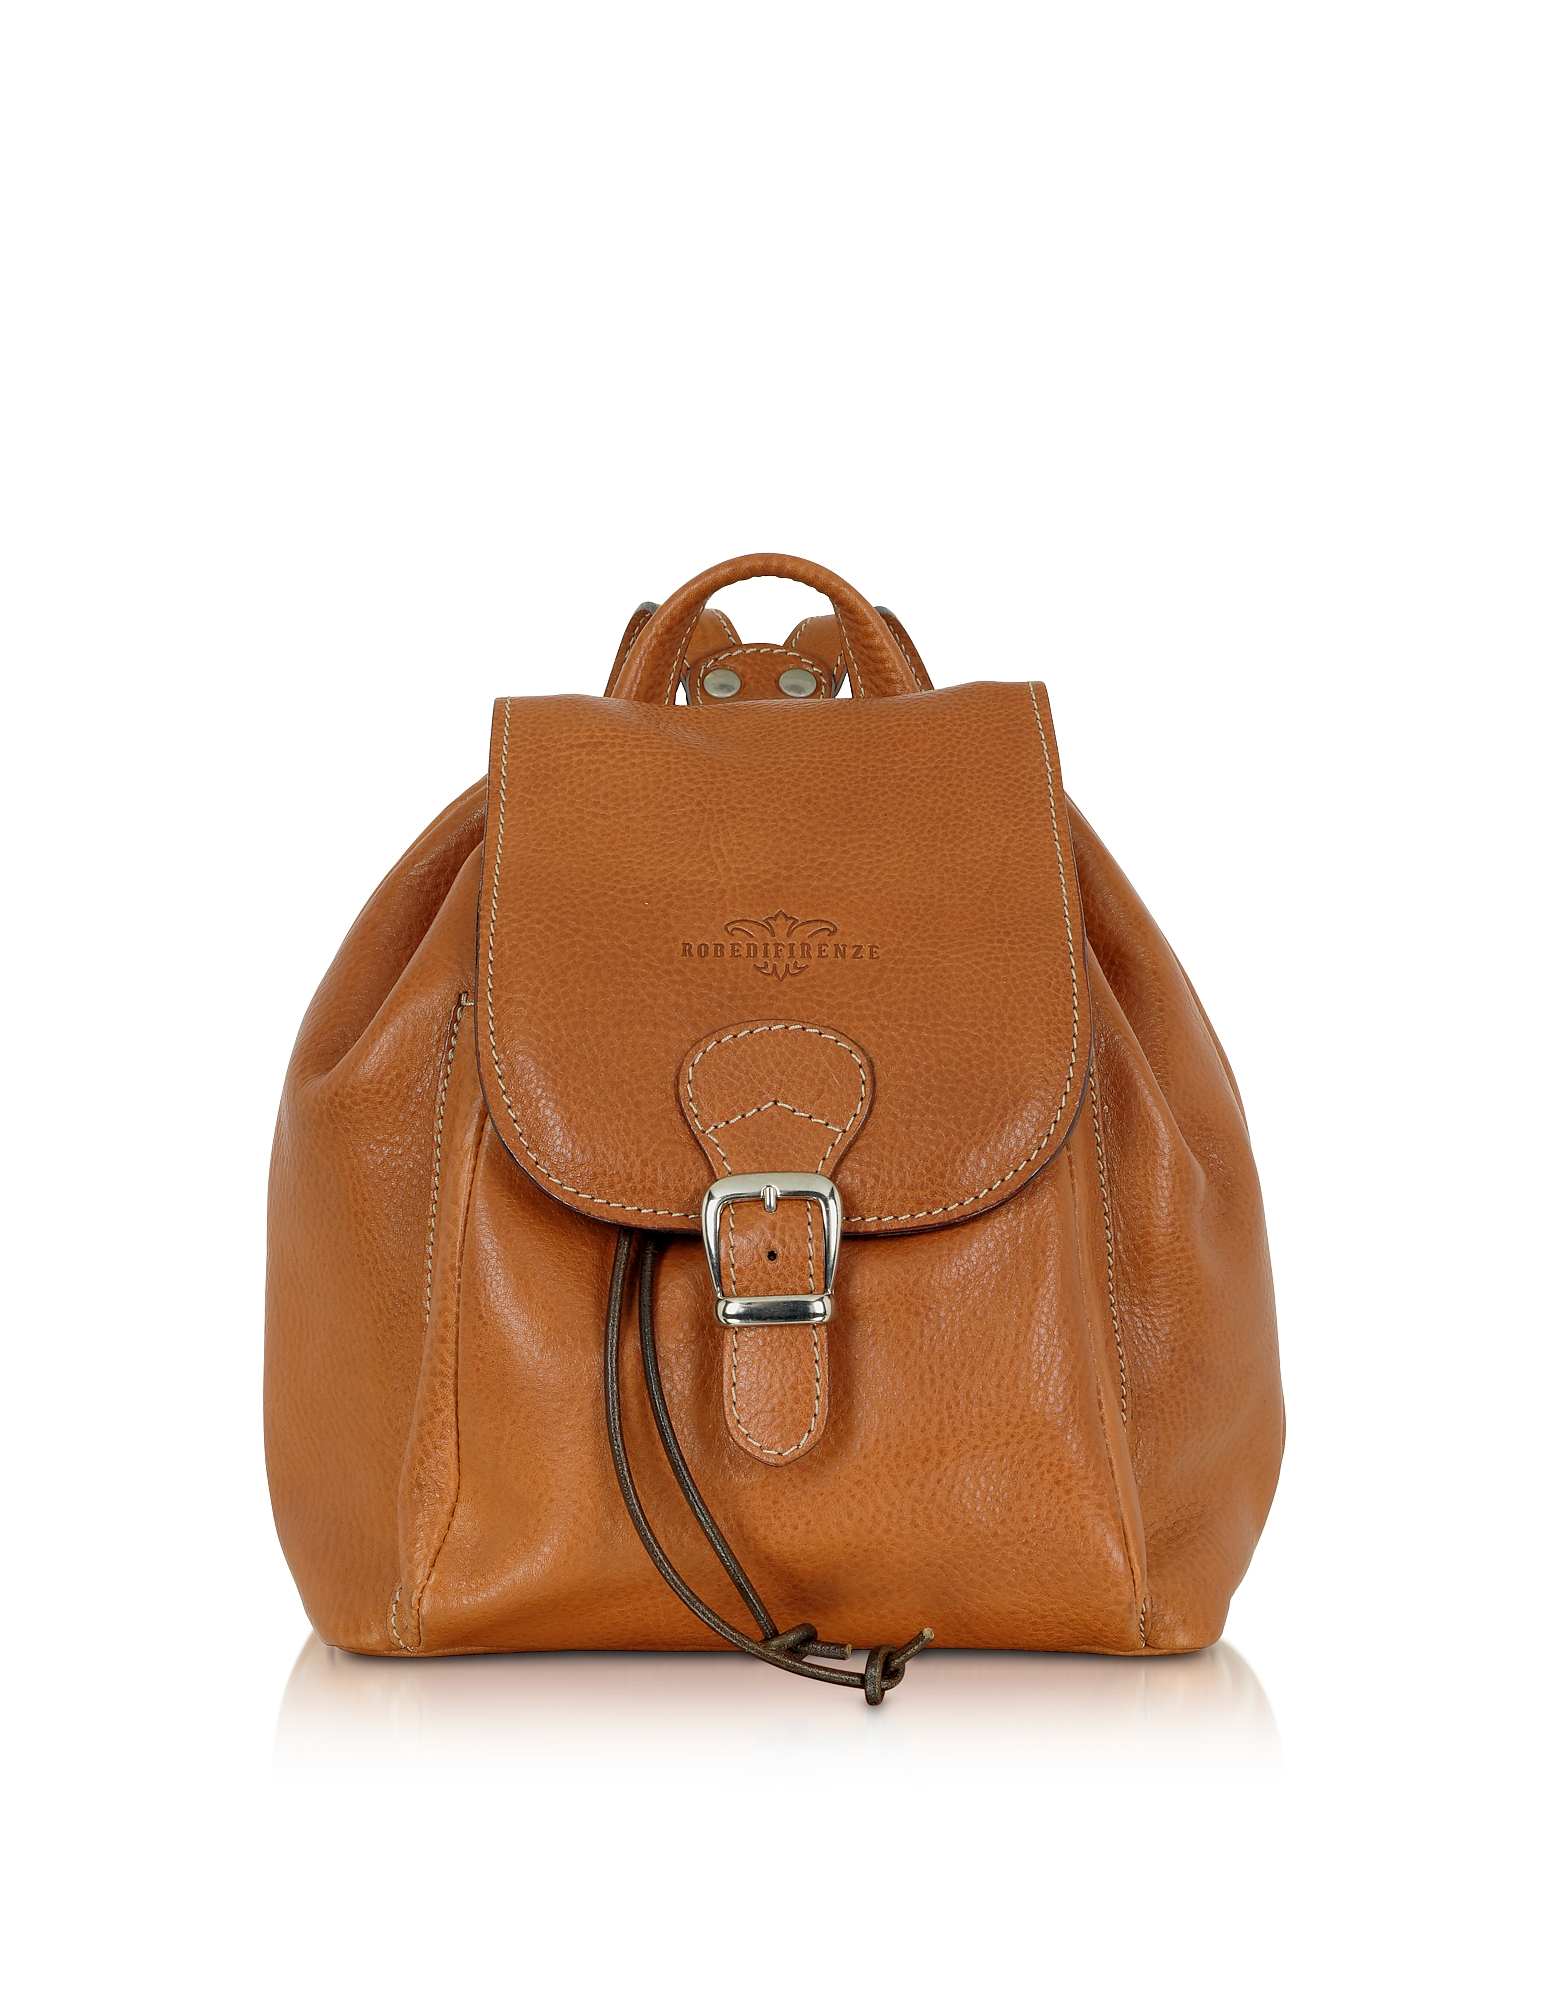 Robe di Firenze Designer Handbags, Camel Italian Leather Backpack (Luggage & Bags) photo